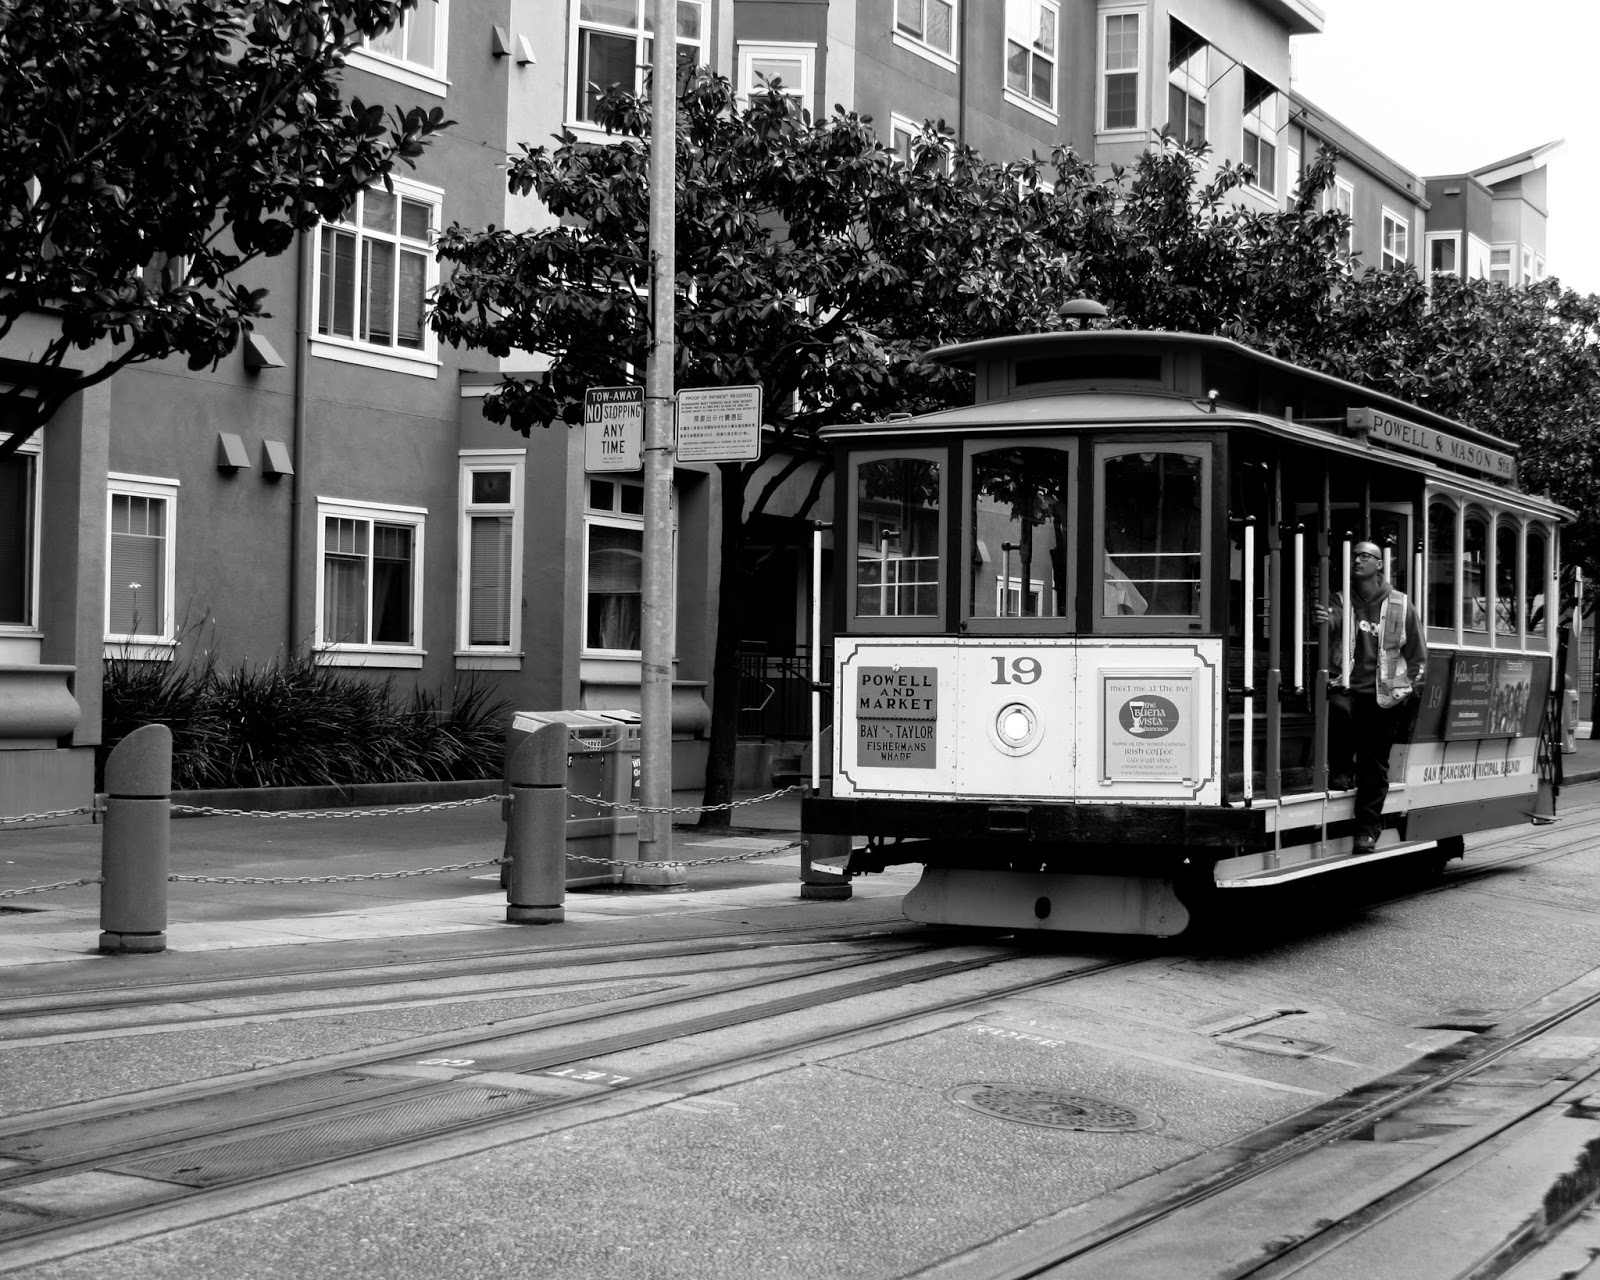 A cable car in Fisherman's Wharf